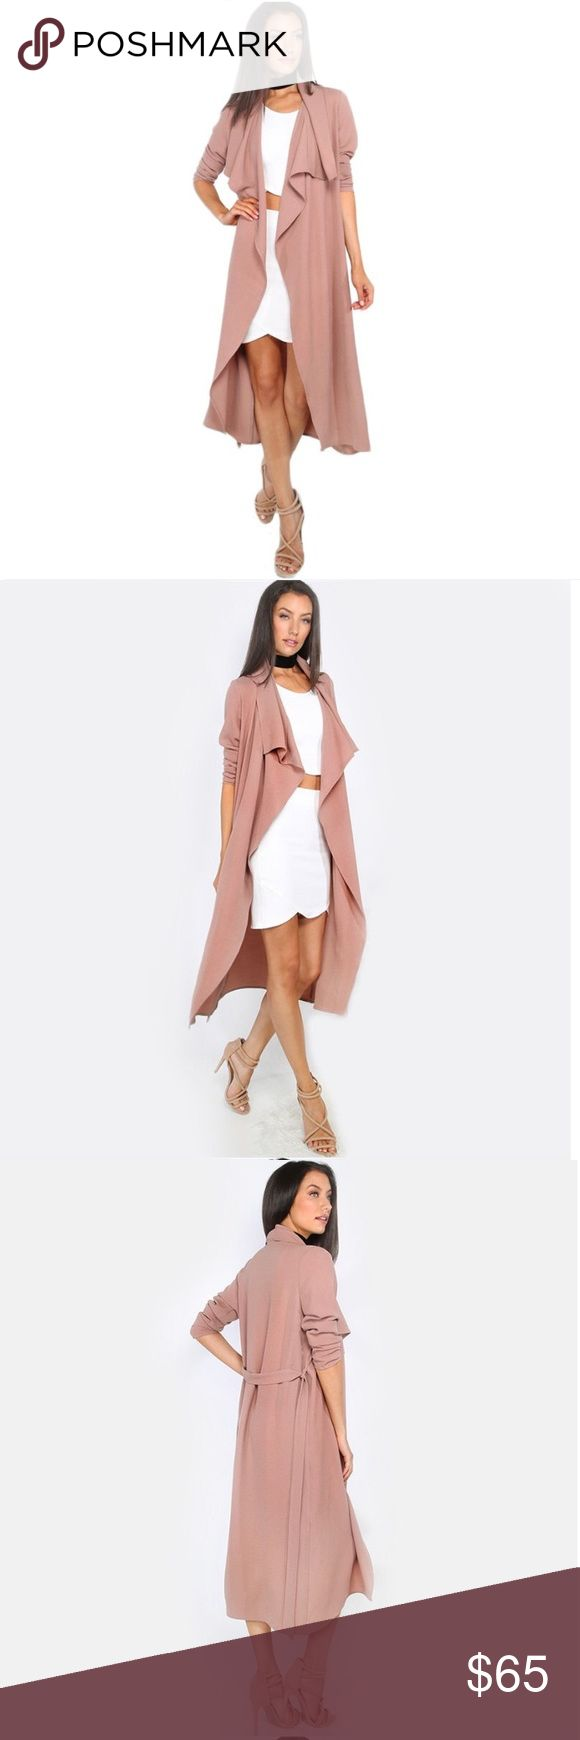 Nude Pink Duster  Brand new duster! It is mostly nude with a hint of pink to it. Comes with a tie for the back, no pocket as its mostly open front. It's so simple and will add such a beautiful touch to each outfit! Material is polyester. Please use the size chart for length and bust measurements!   No brand. NOT Missguided, tagged for brand exposure.    Bundle for discounts!   No off app transaction or trades!   Scroll below to find lower priced items to help you bundle! Missguided Jackets…